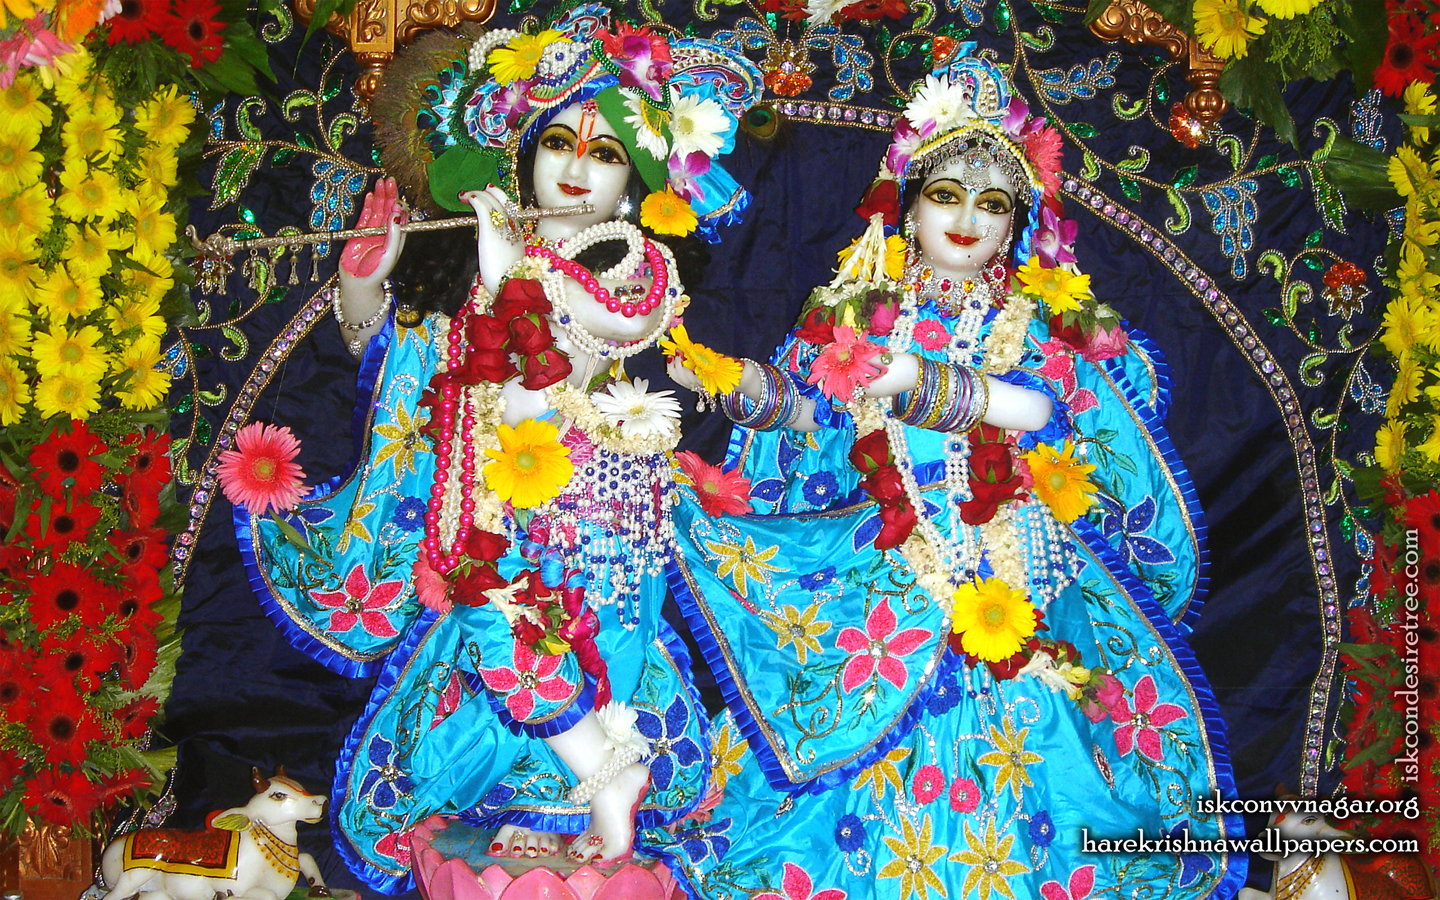 Sri Sri Radha Giridhari Wallpaper (023) Size 1440x900 Download